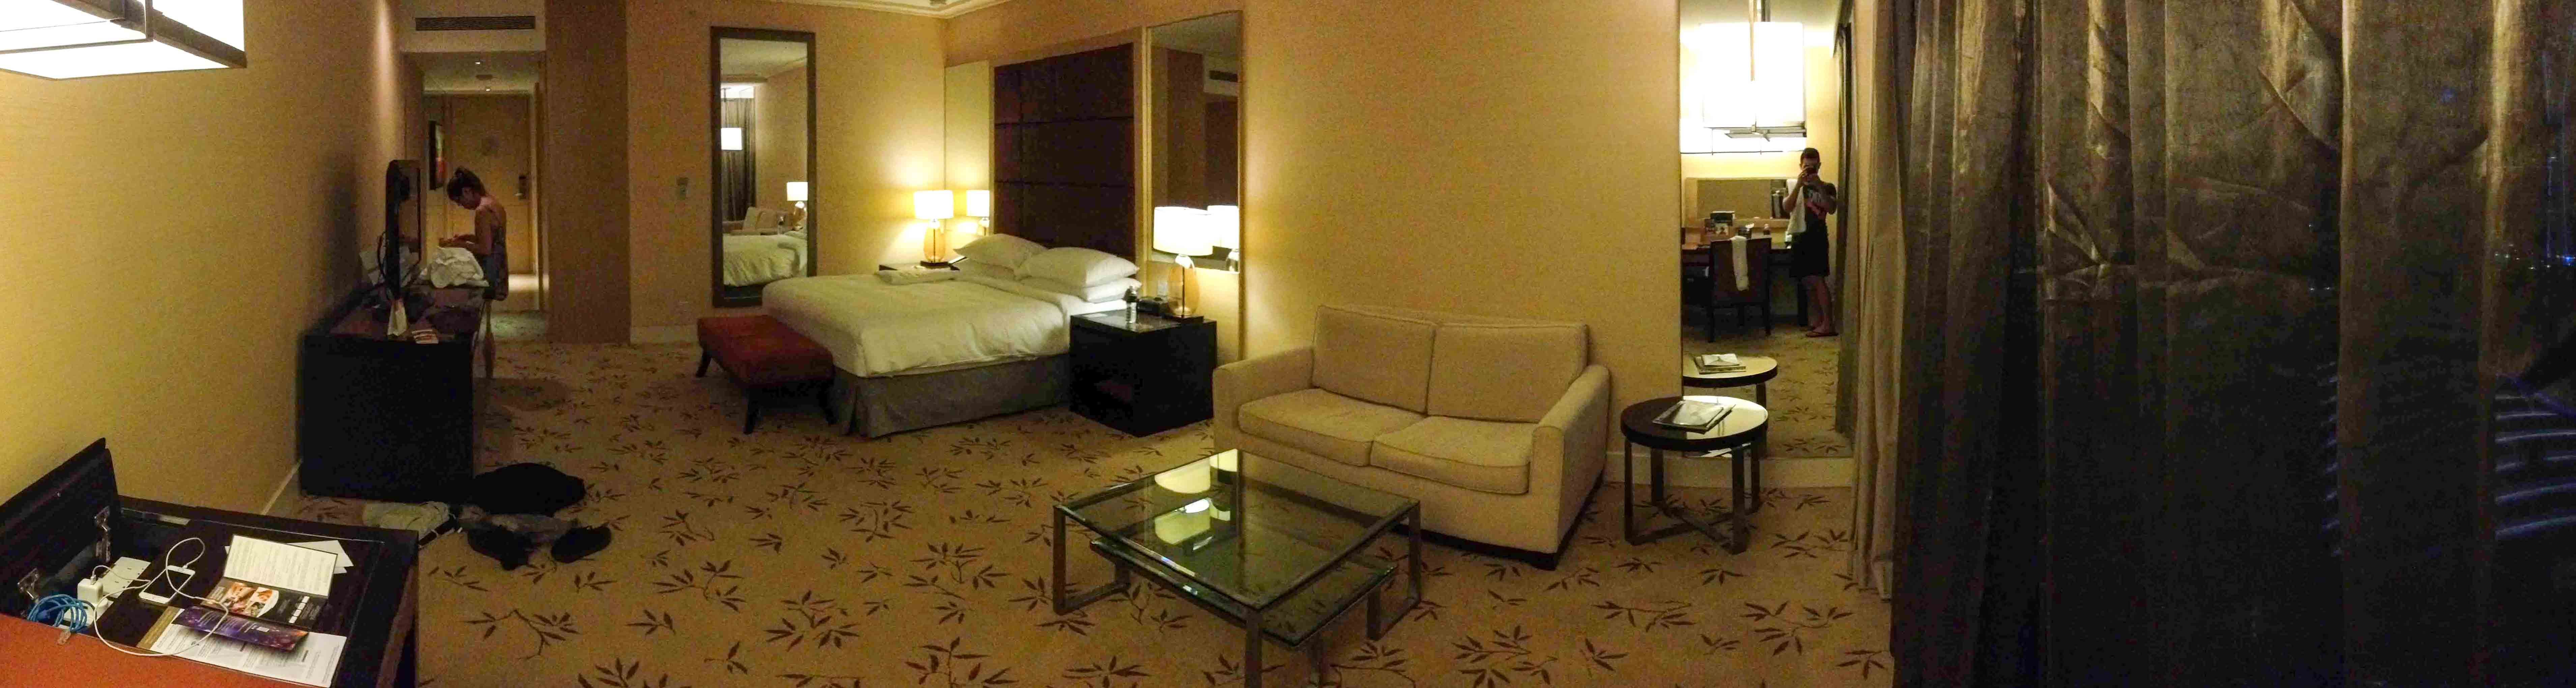 where_to_stay_in_singapore_marina_bay_sands_world_travel_bound